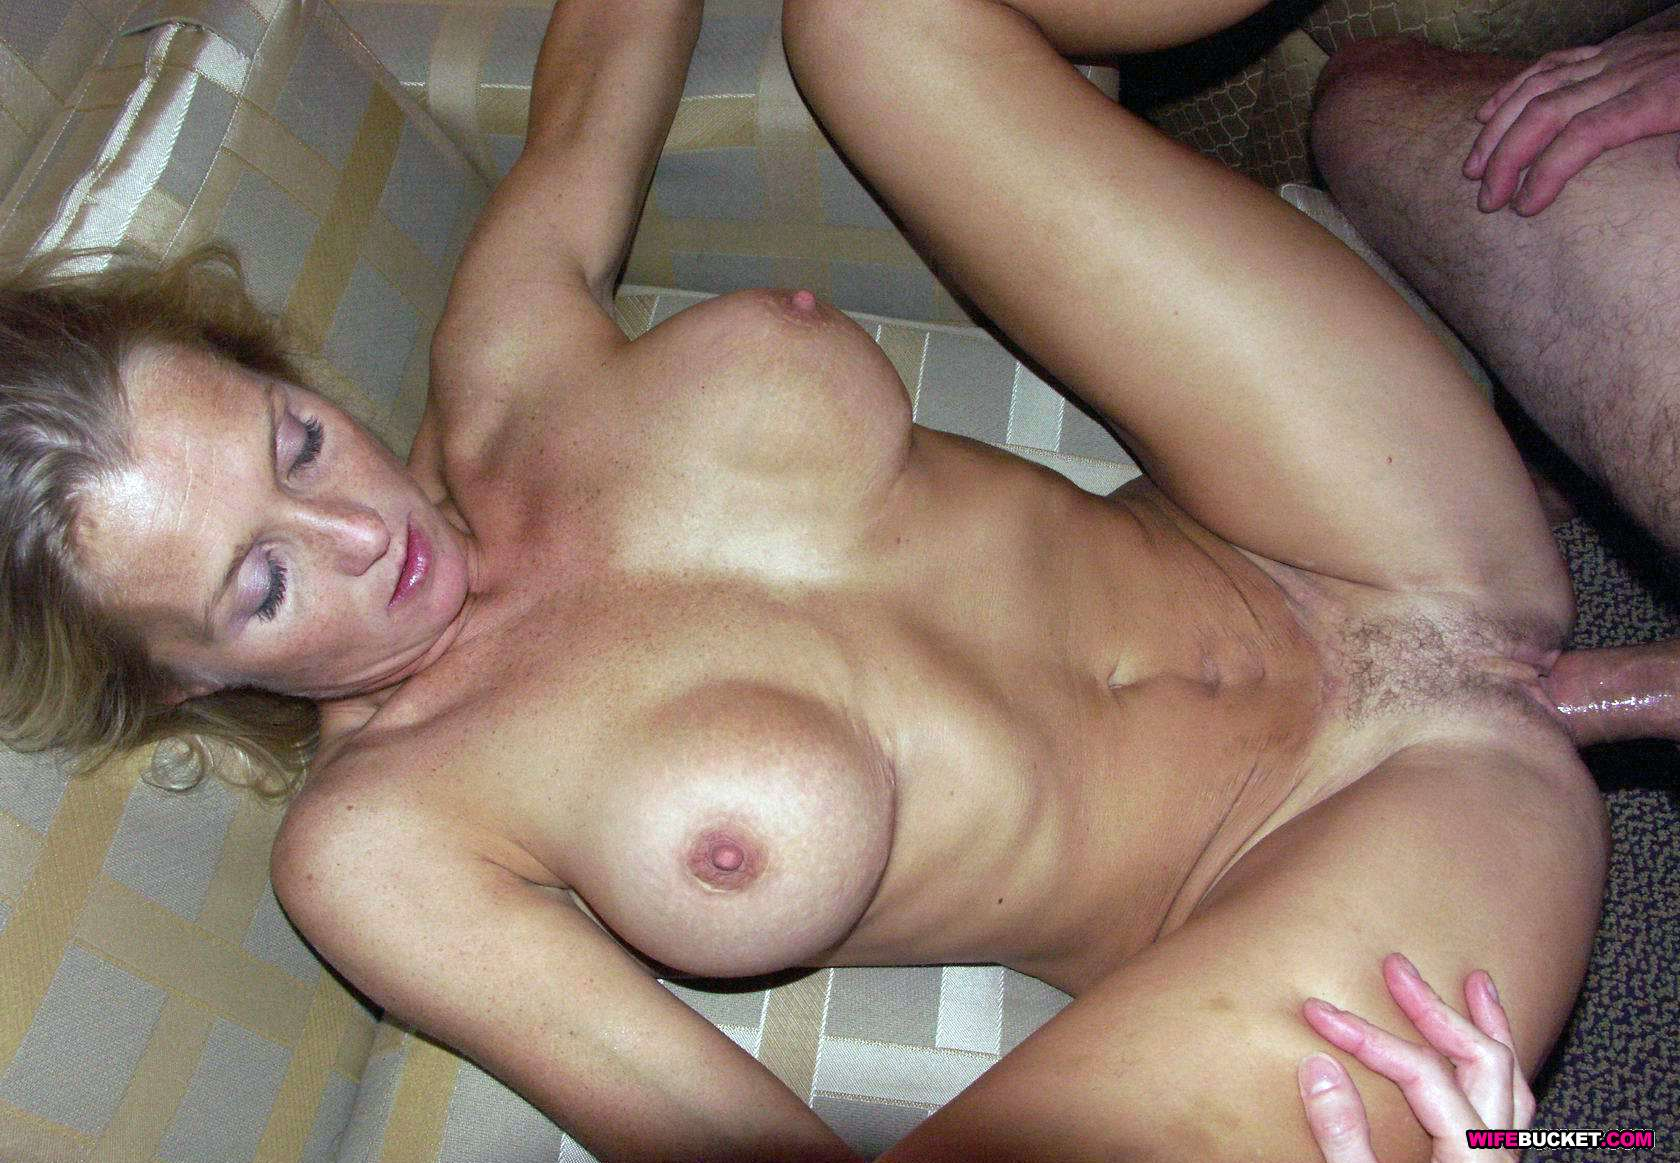 Amateur swinger wife porn right! excellent